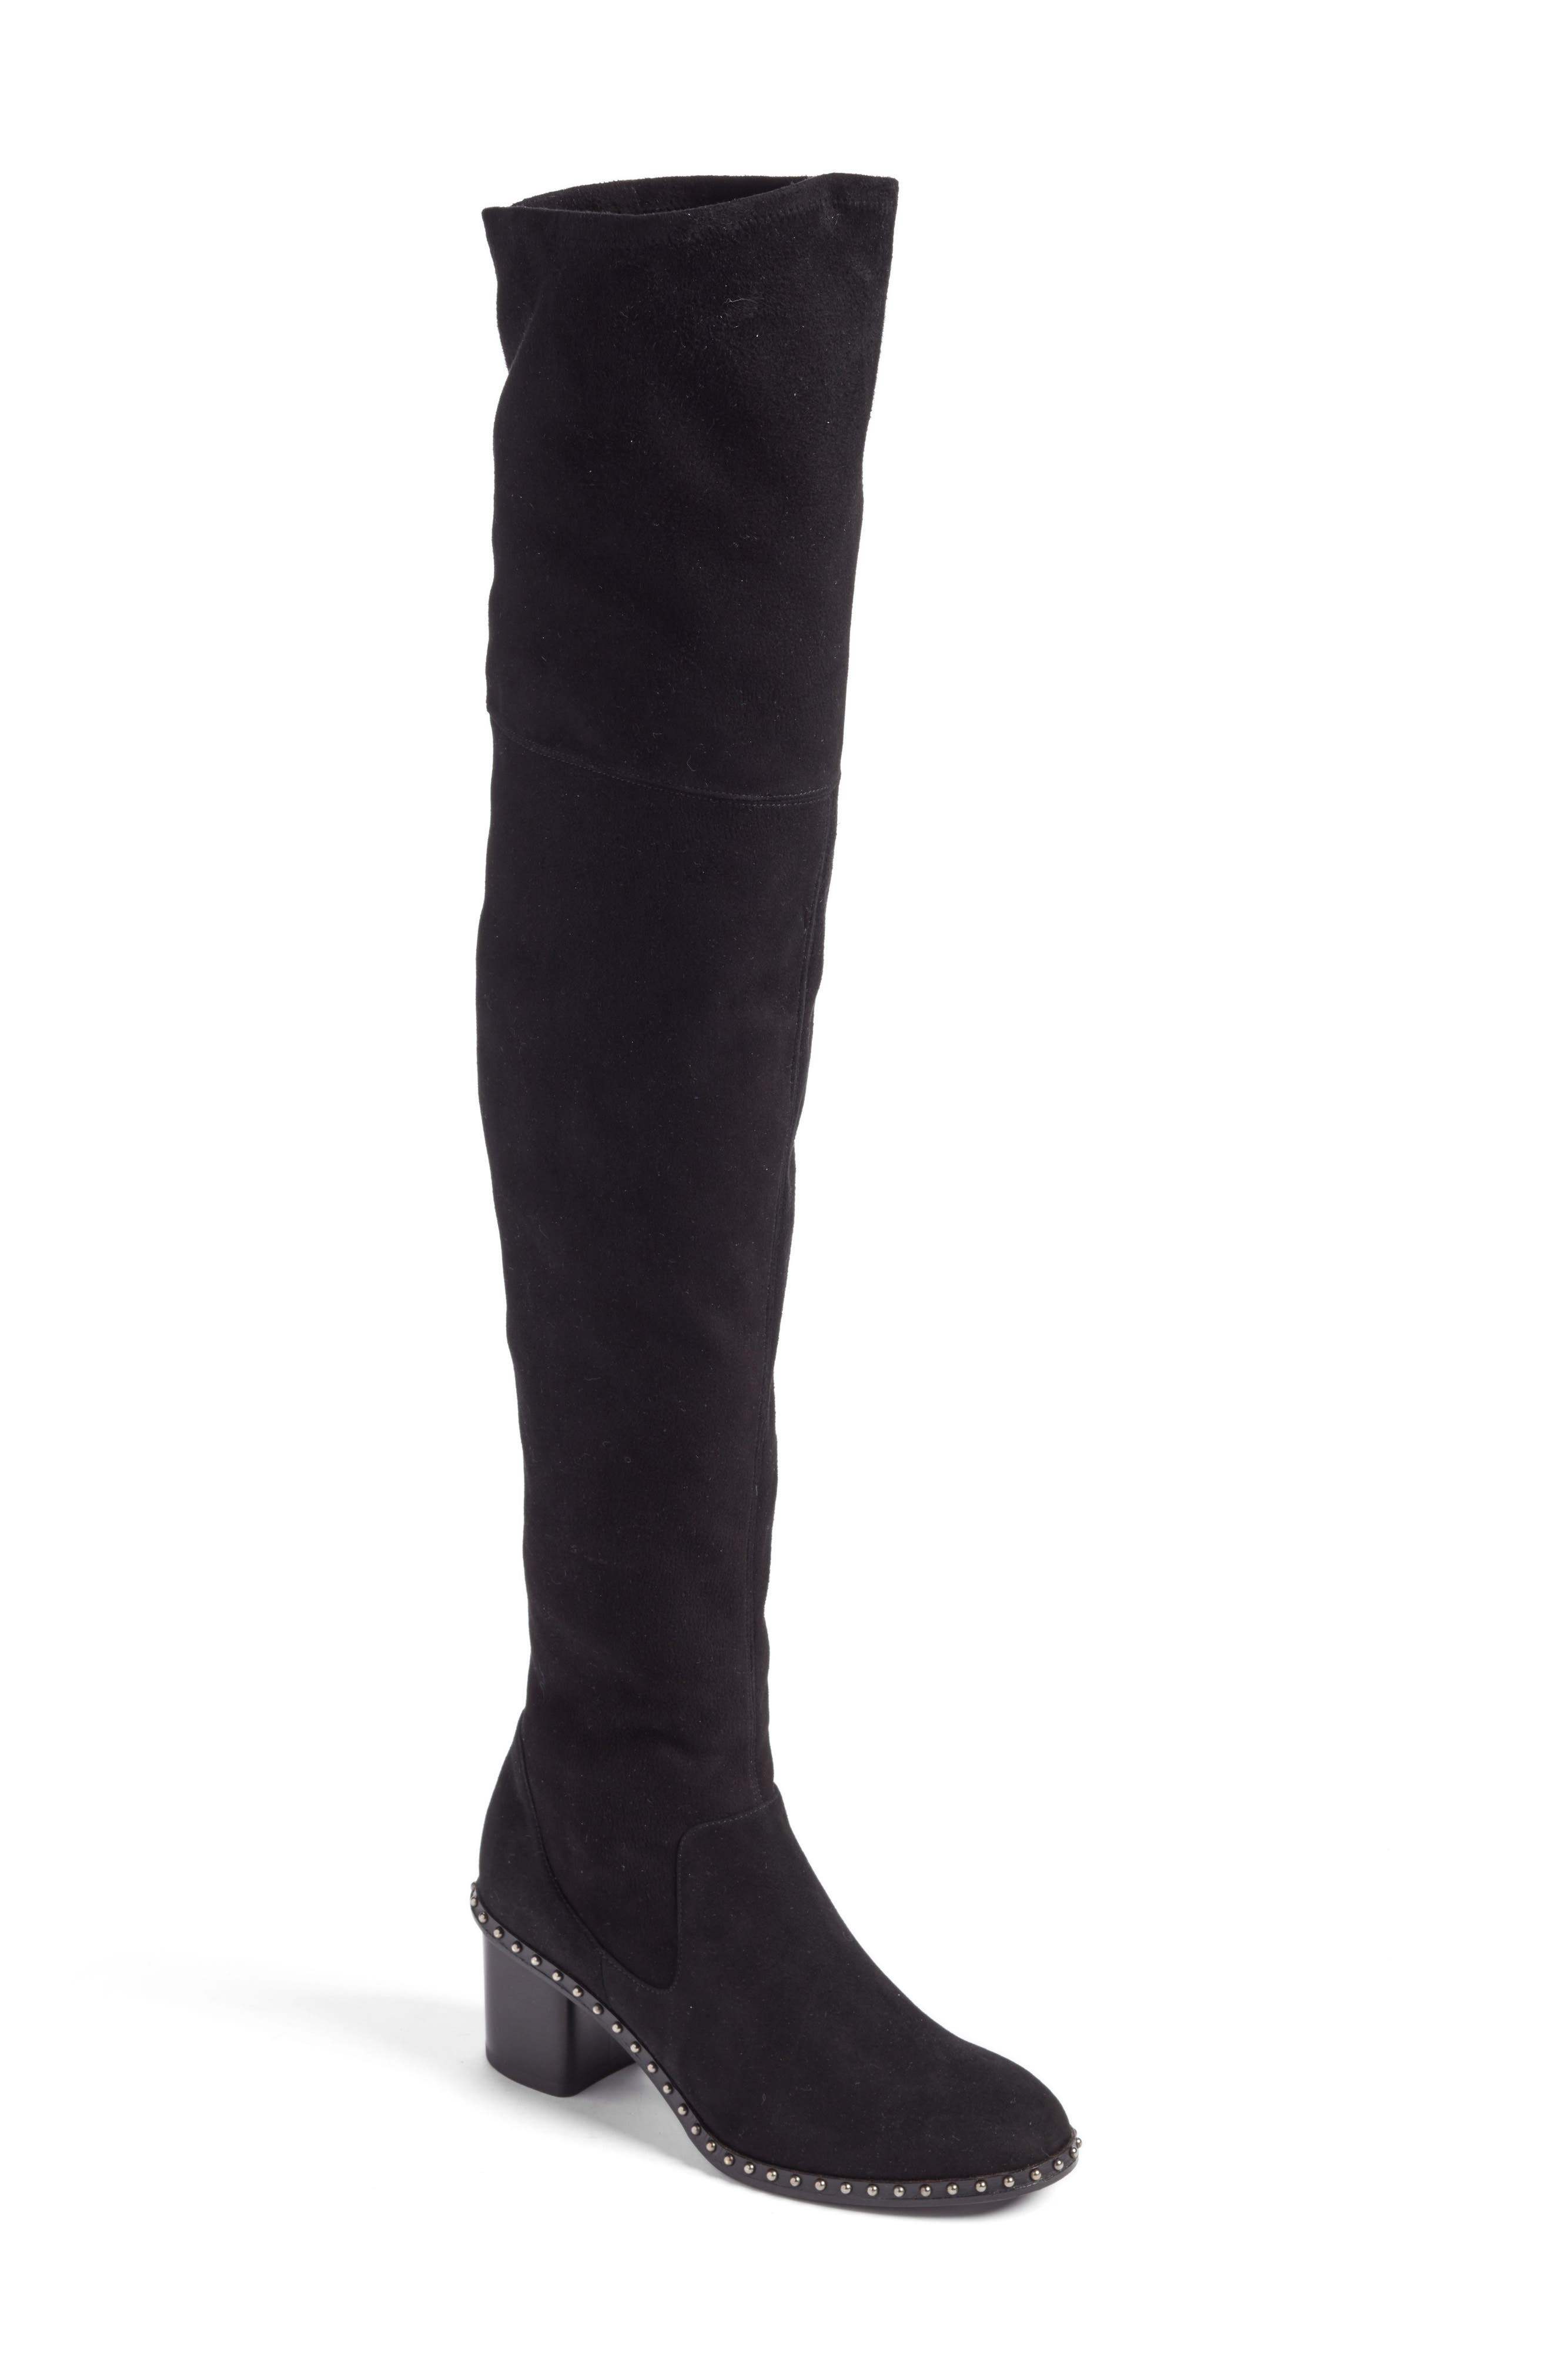 Alternate Image 1 Selected - rag & bone Rina Over the Knee Boot (Women)